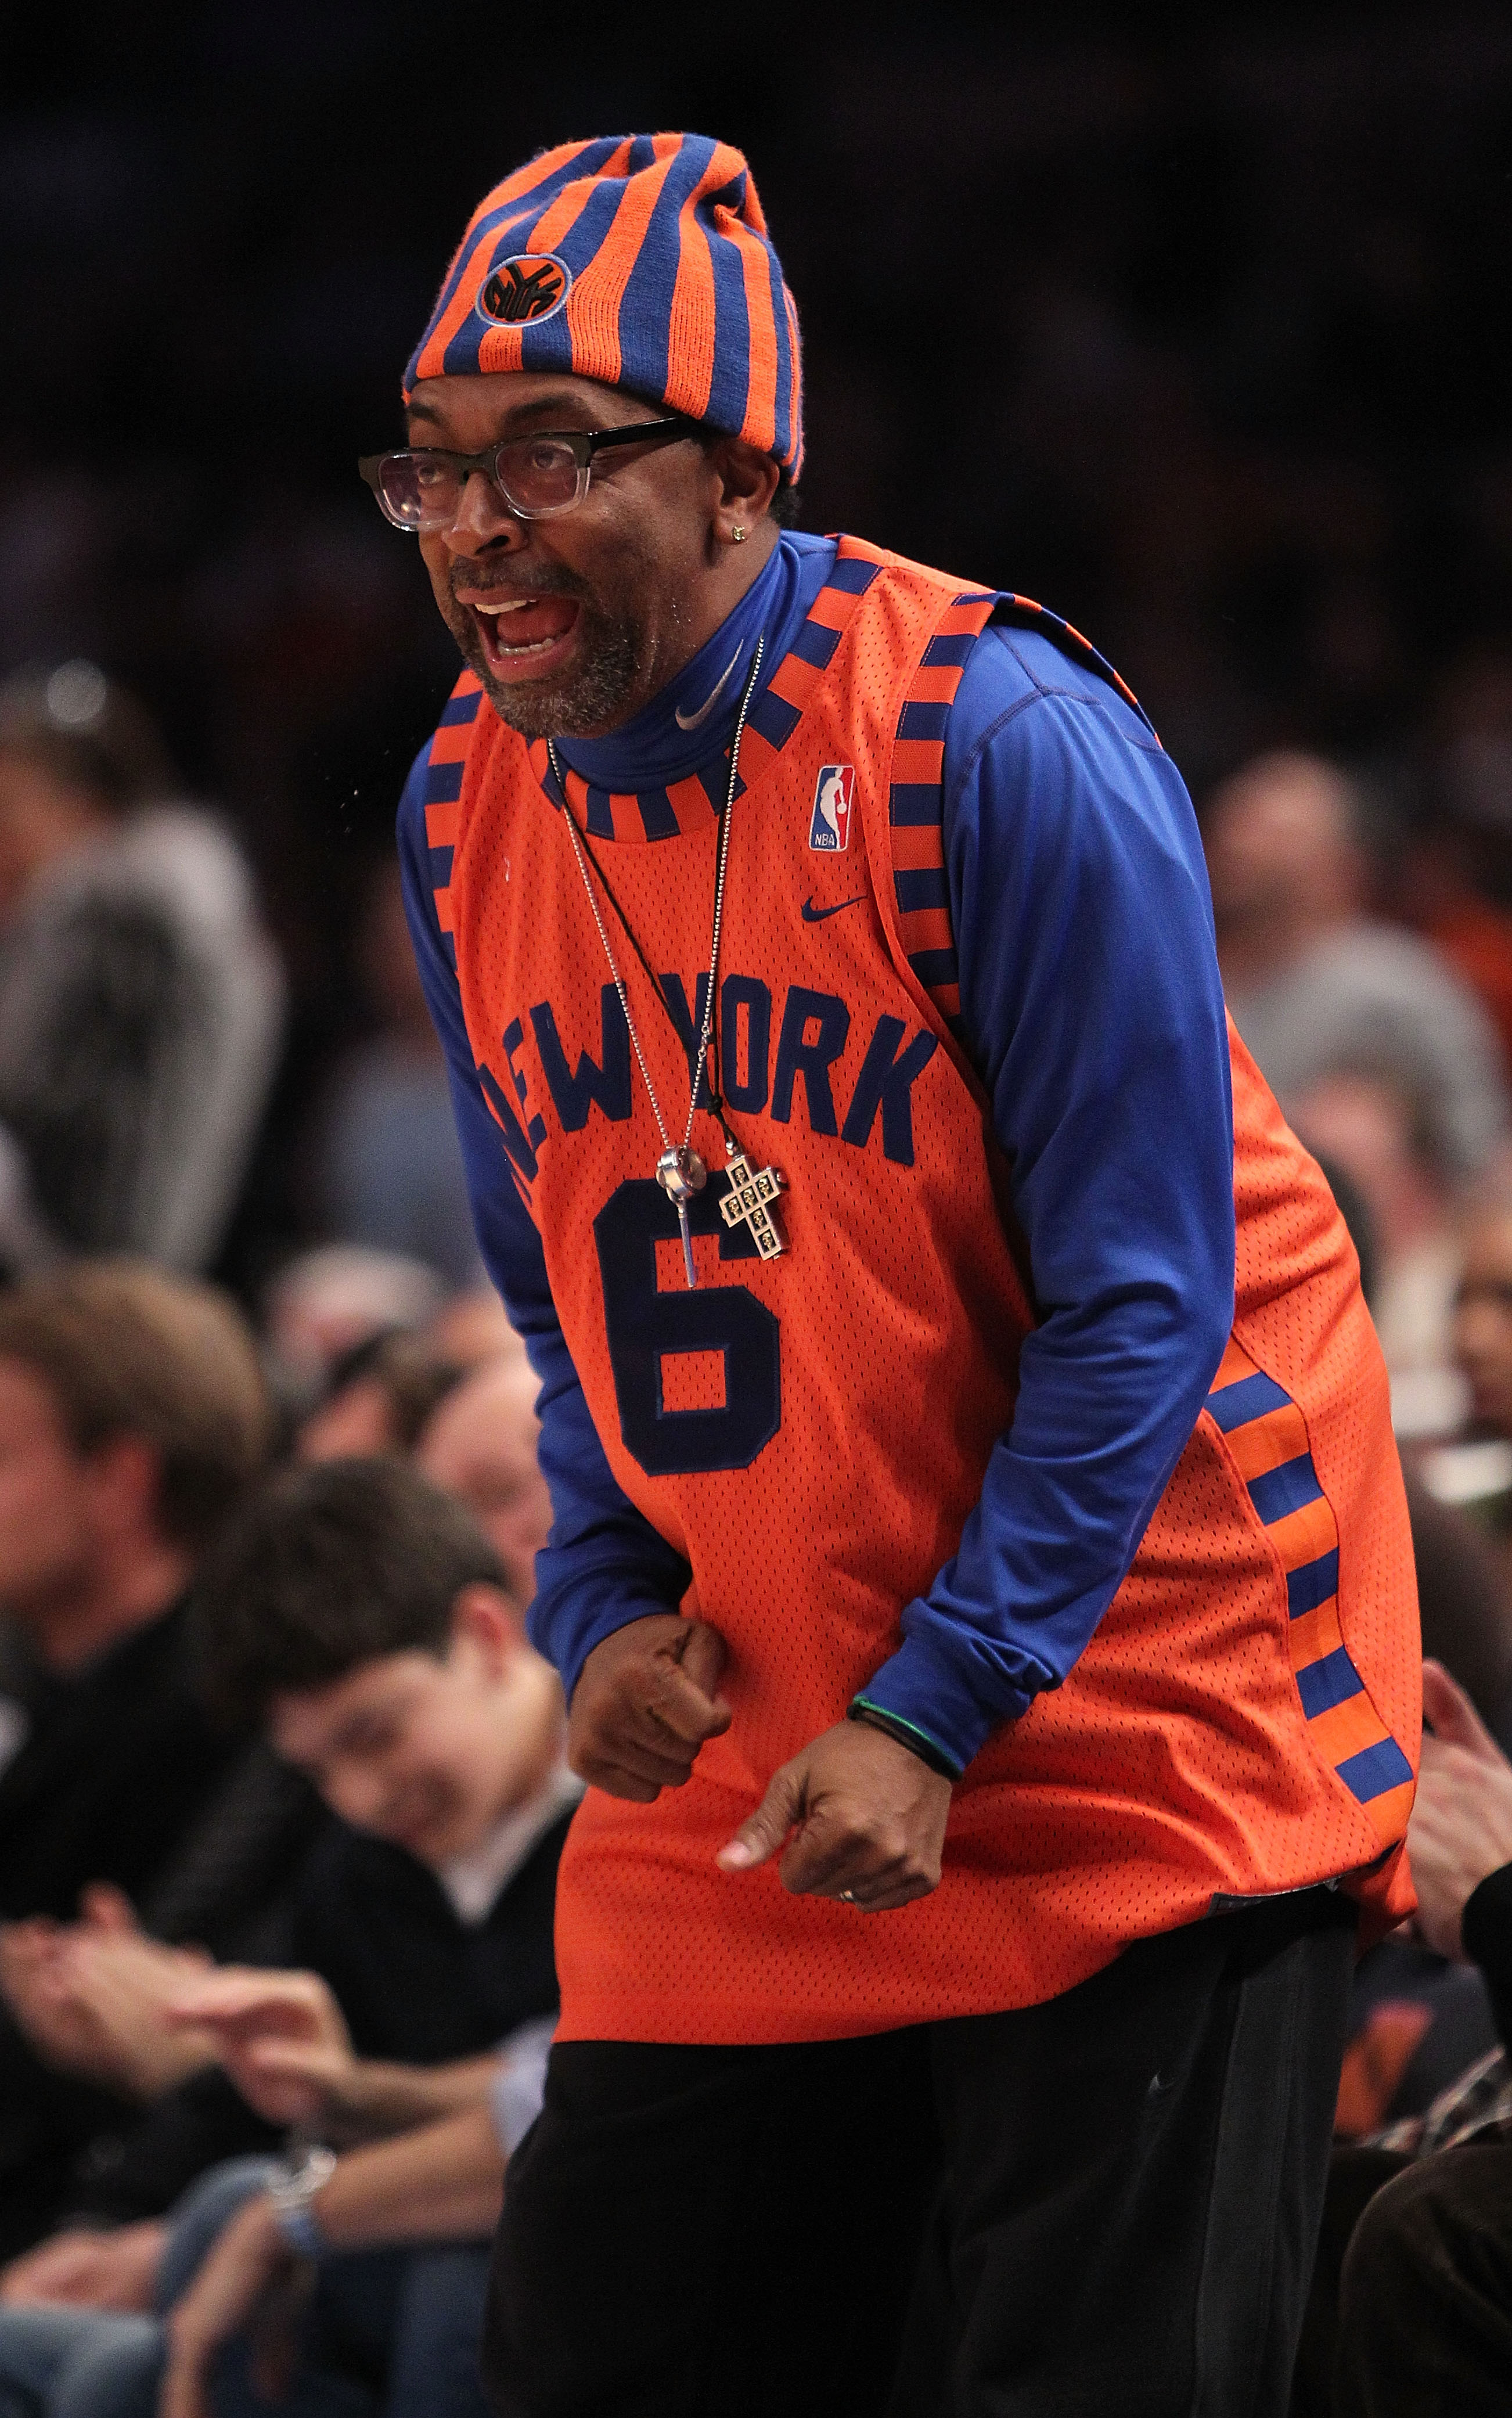 NEW YORK, NY - FEBRUARY 02: Director Spike Lee  courtside during the game between the New York Knicks and the Dallas Mavericks at Madison Square Garden on February 2, 2011 in New York City. NOTE TO USER: User expressly acknowledges and agrees that, by dow